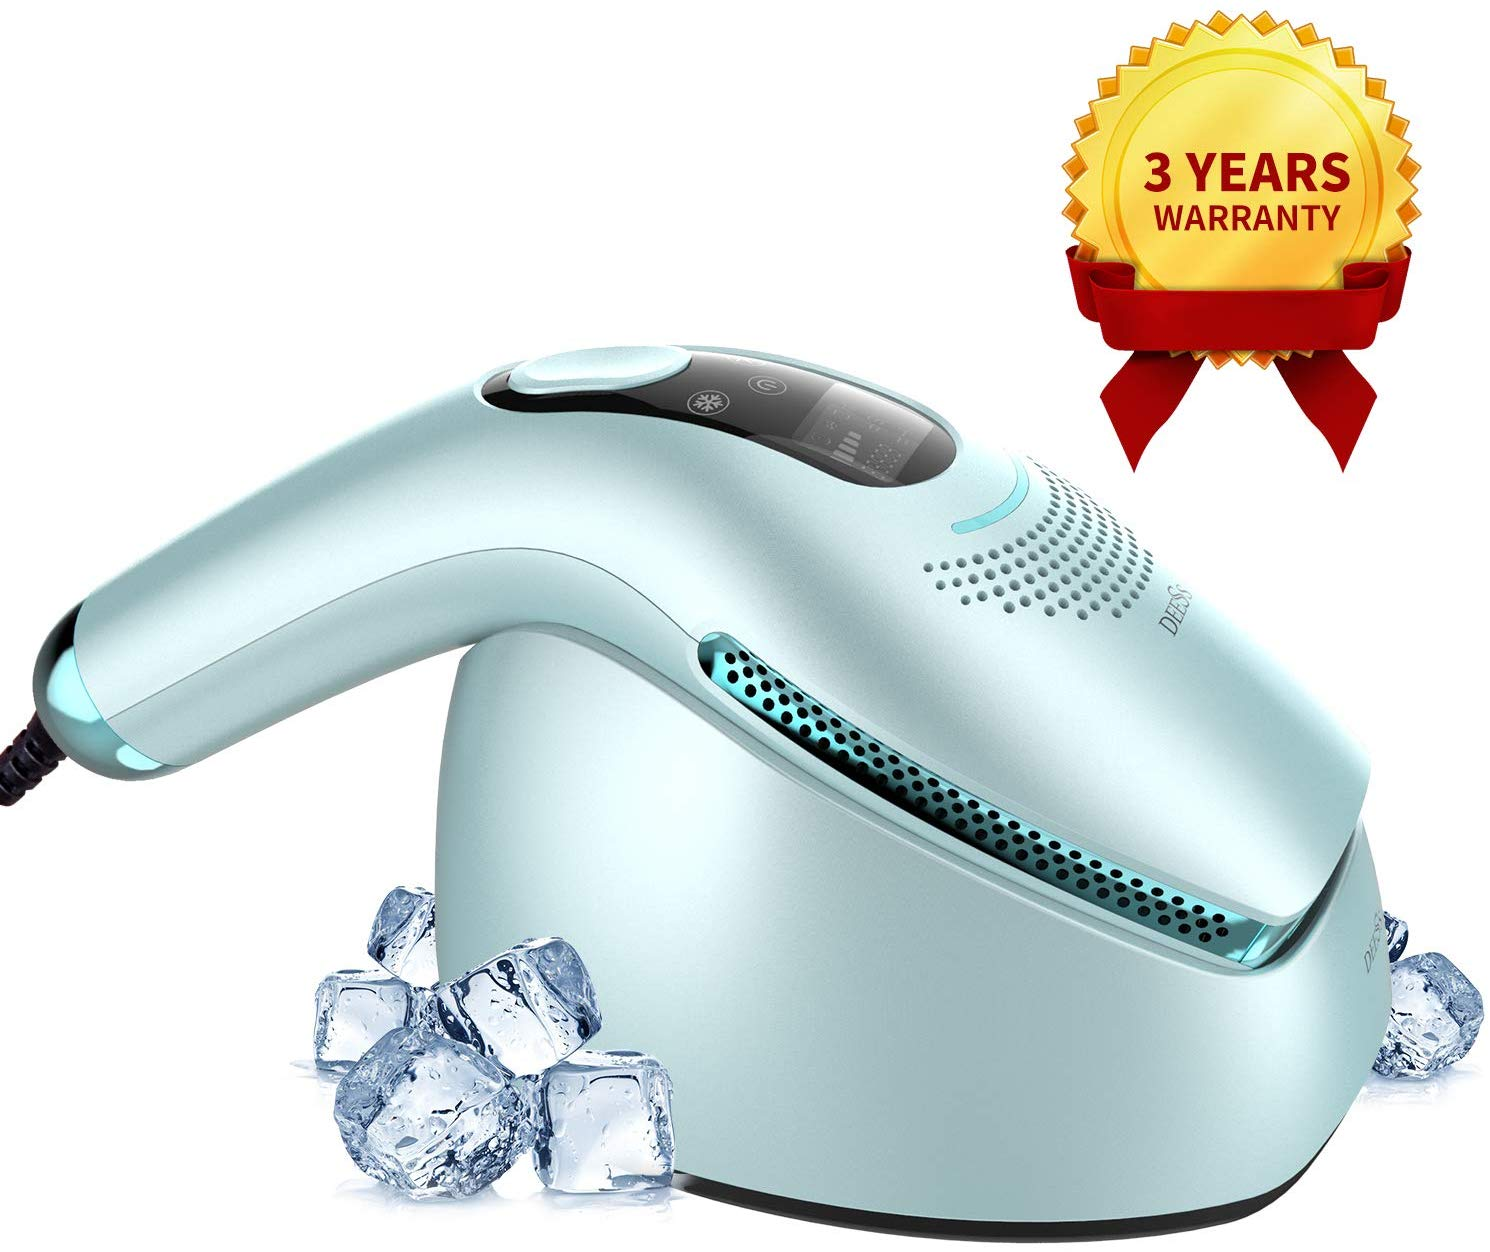 DEESS ICY Cool Laser Hair Removal System GP590,0.9s/Flash Fastest Cold Compress IPL Hair Removal Device